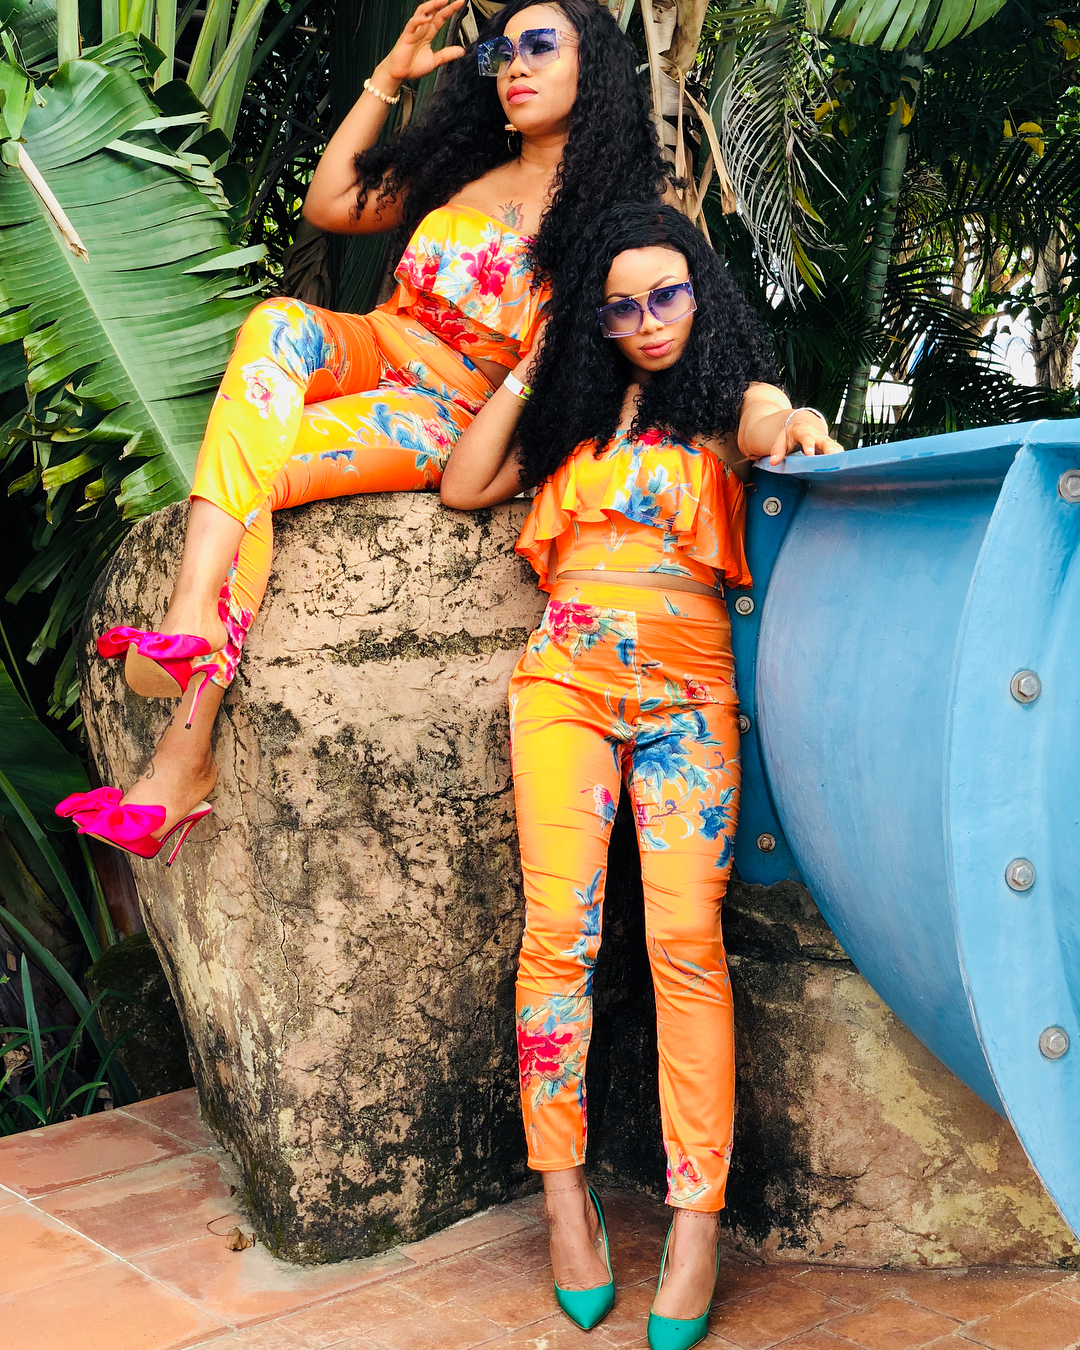 38665544 878475179030221 2940727802212646912 n - #BBNaija: Nina Show Off Her Exotic Car Gifted To Her By Her Stylist